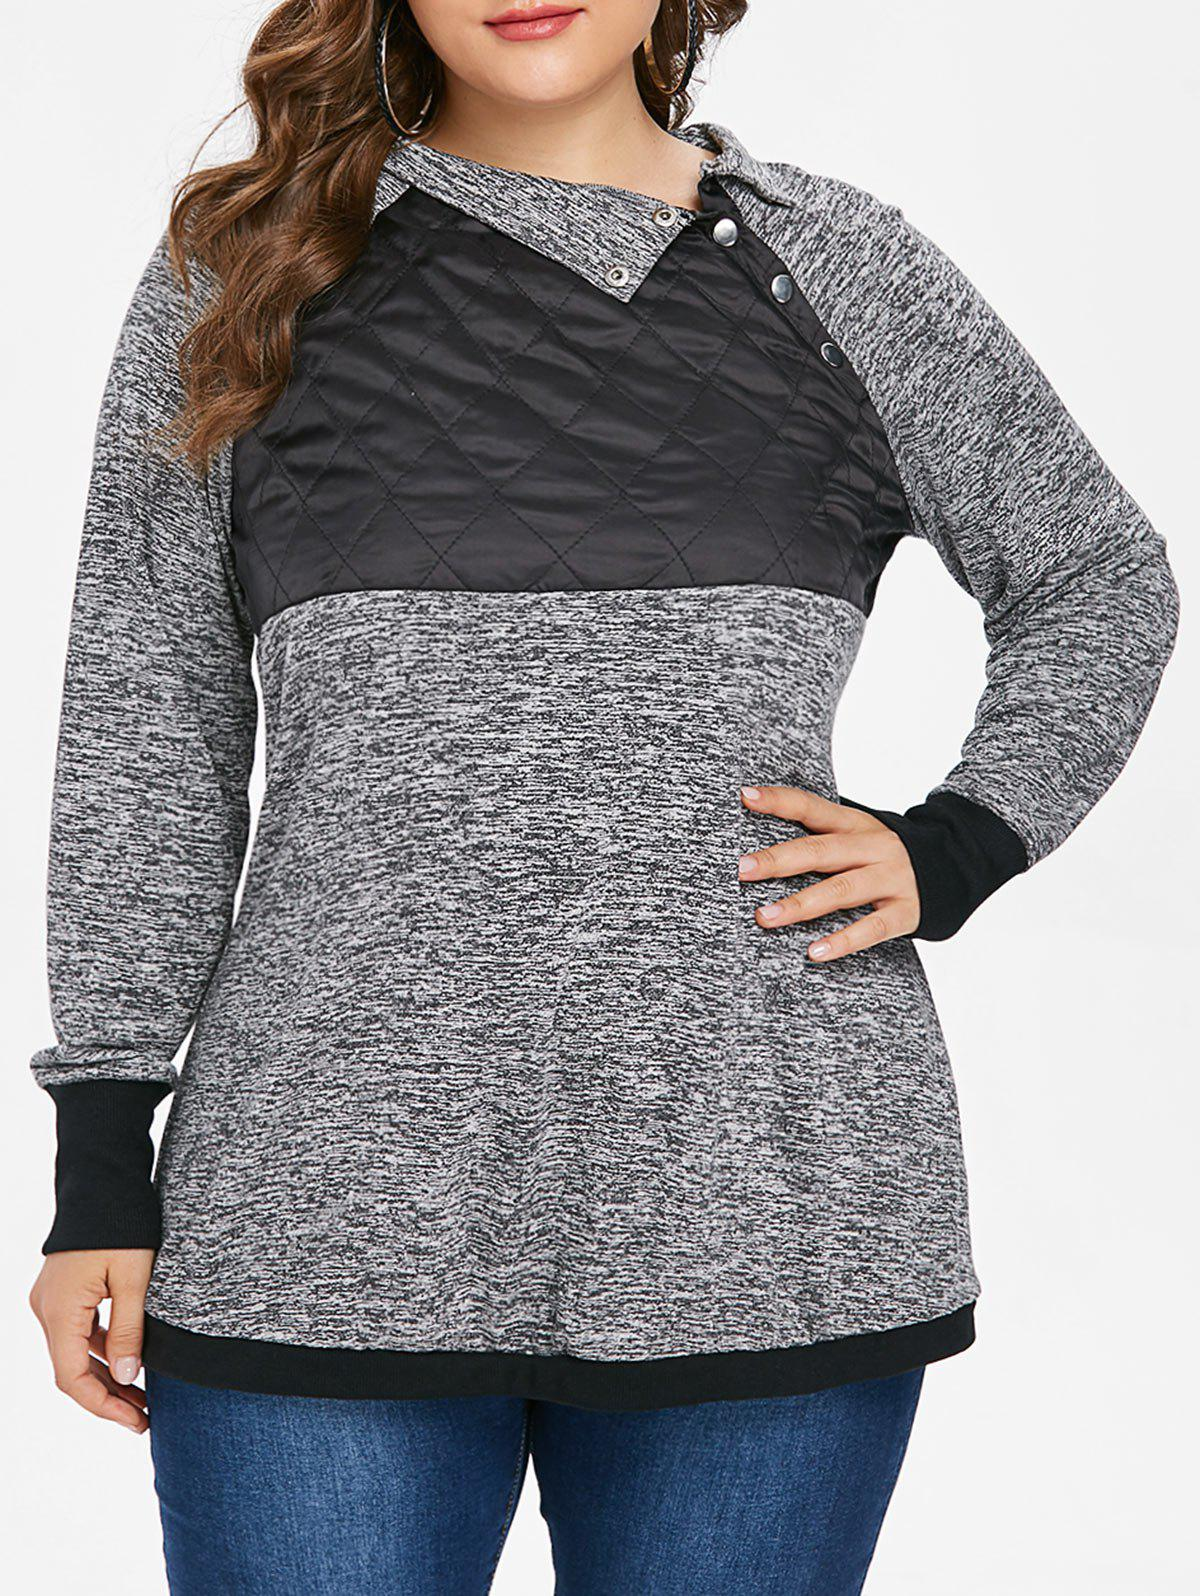 Plus Size Marled Raglan Sleeve T-shirt - DARK GRAY 3X